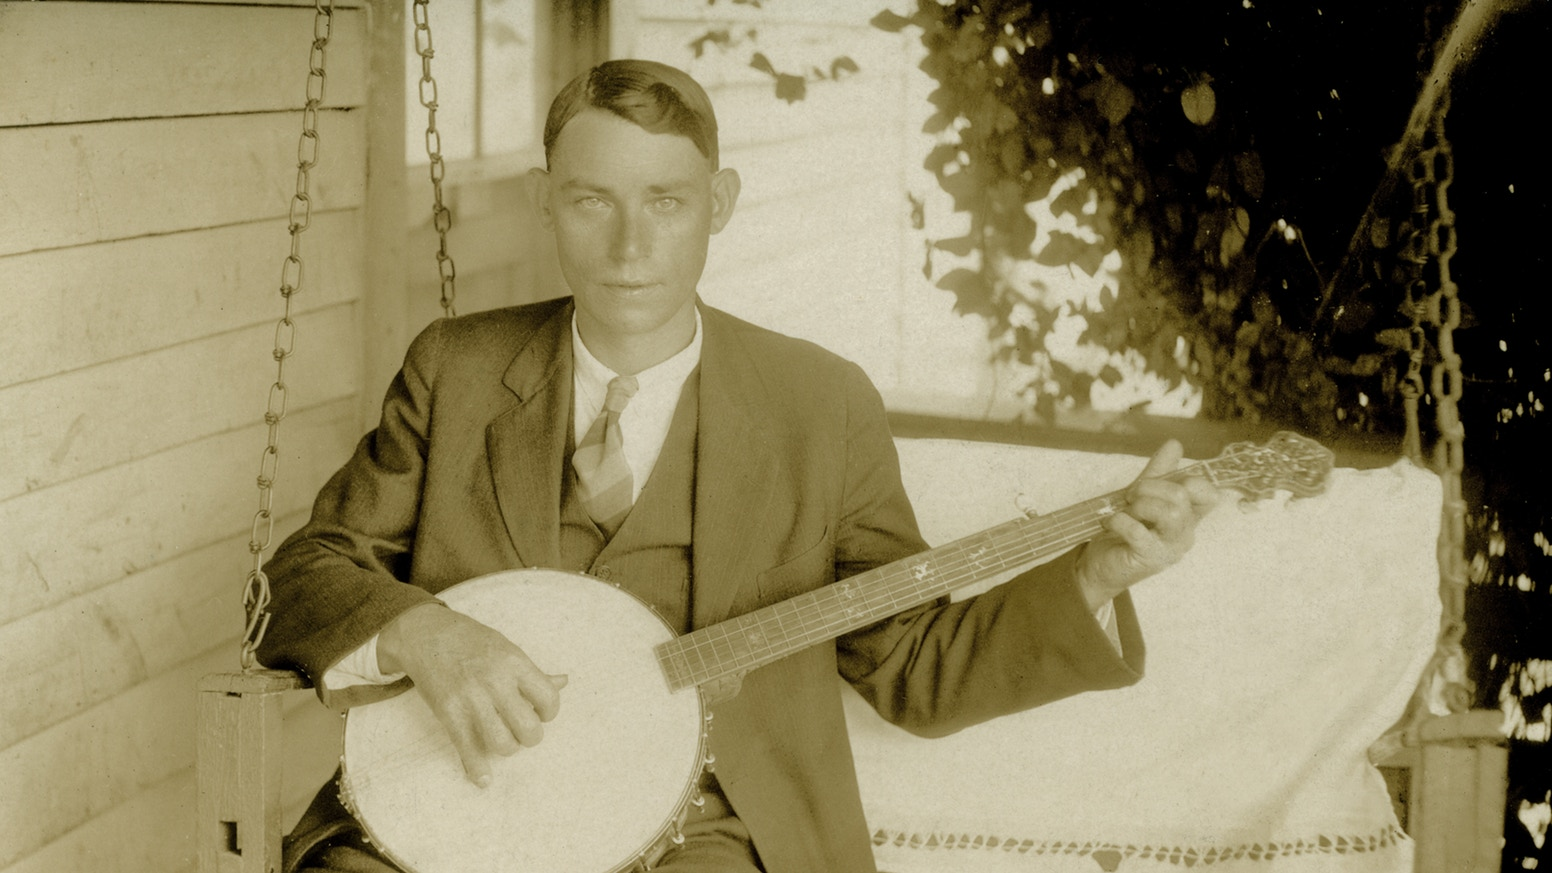 The Banjo Project: A Digital Museum For America's Instrument - Built on a searchable archive of over 300 hours of original media, archival footage, stills and recordings, The Banjo Project is an online cultural resource center devoted to the instrument's colorful and complicated history, combining interactive documentary, up-to-date research and curated content.